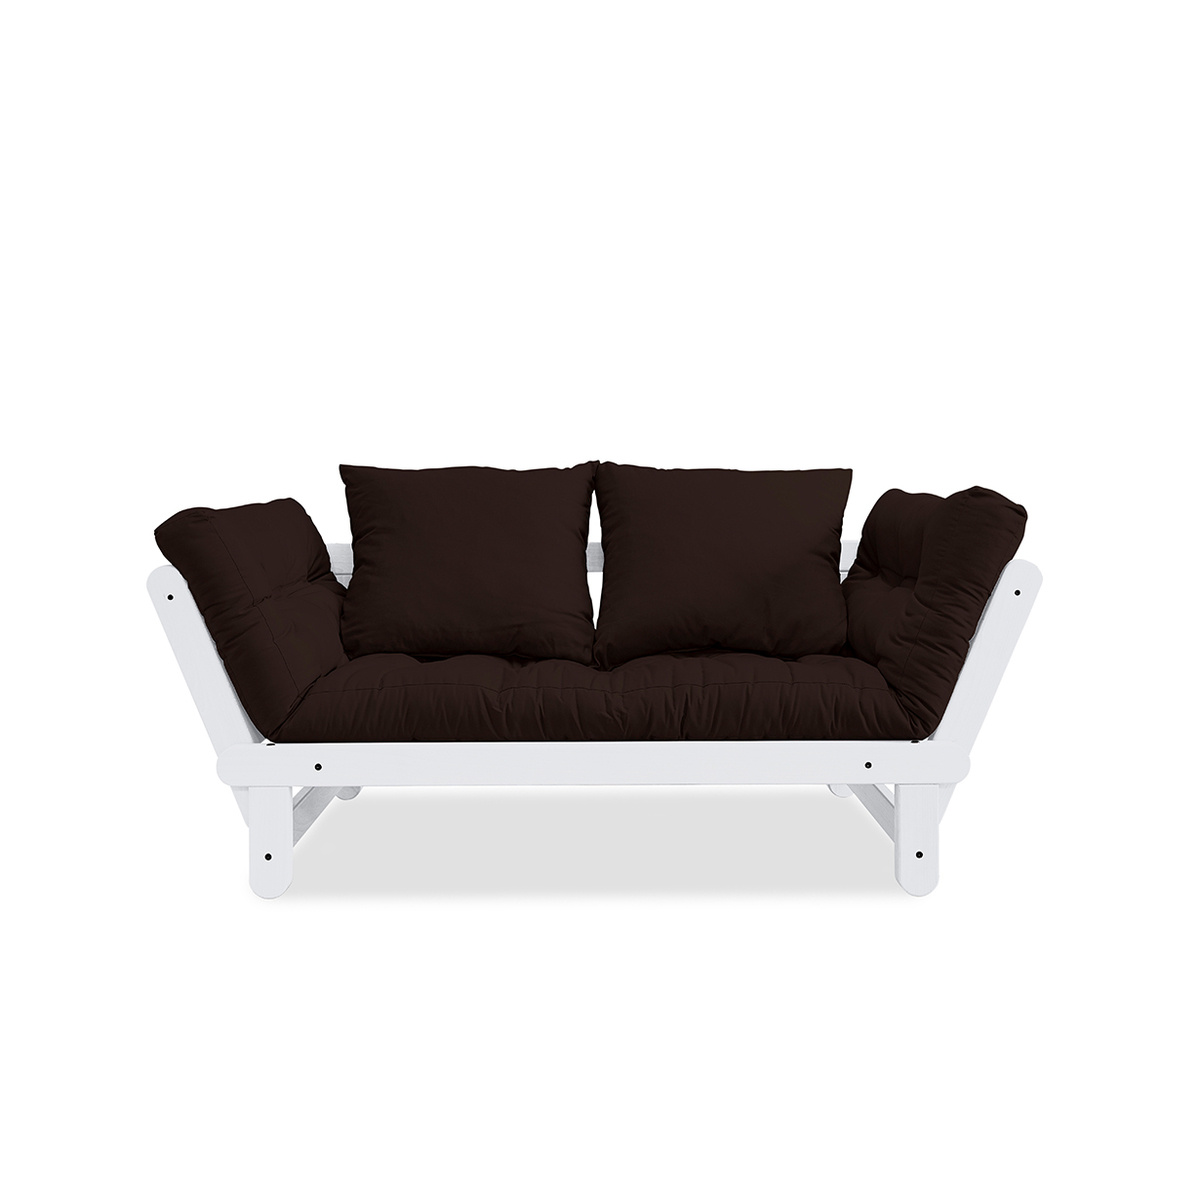 Beat Sofa Bed With White Structure By Karup Lovethesign